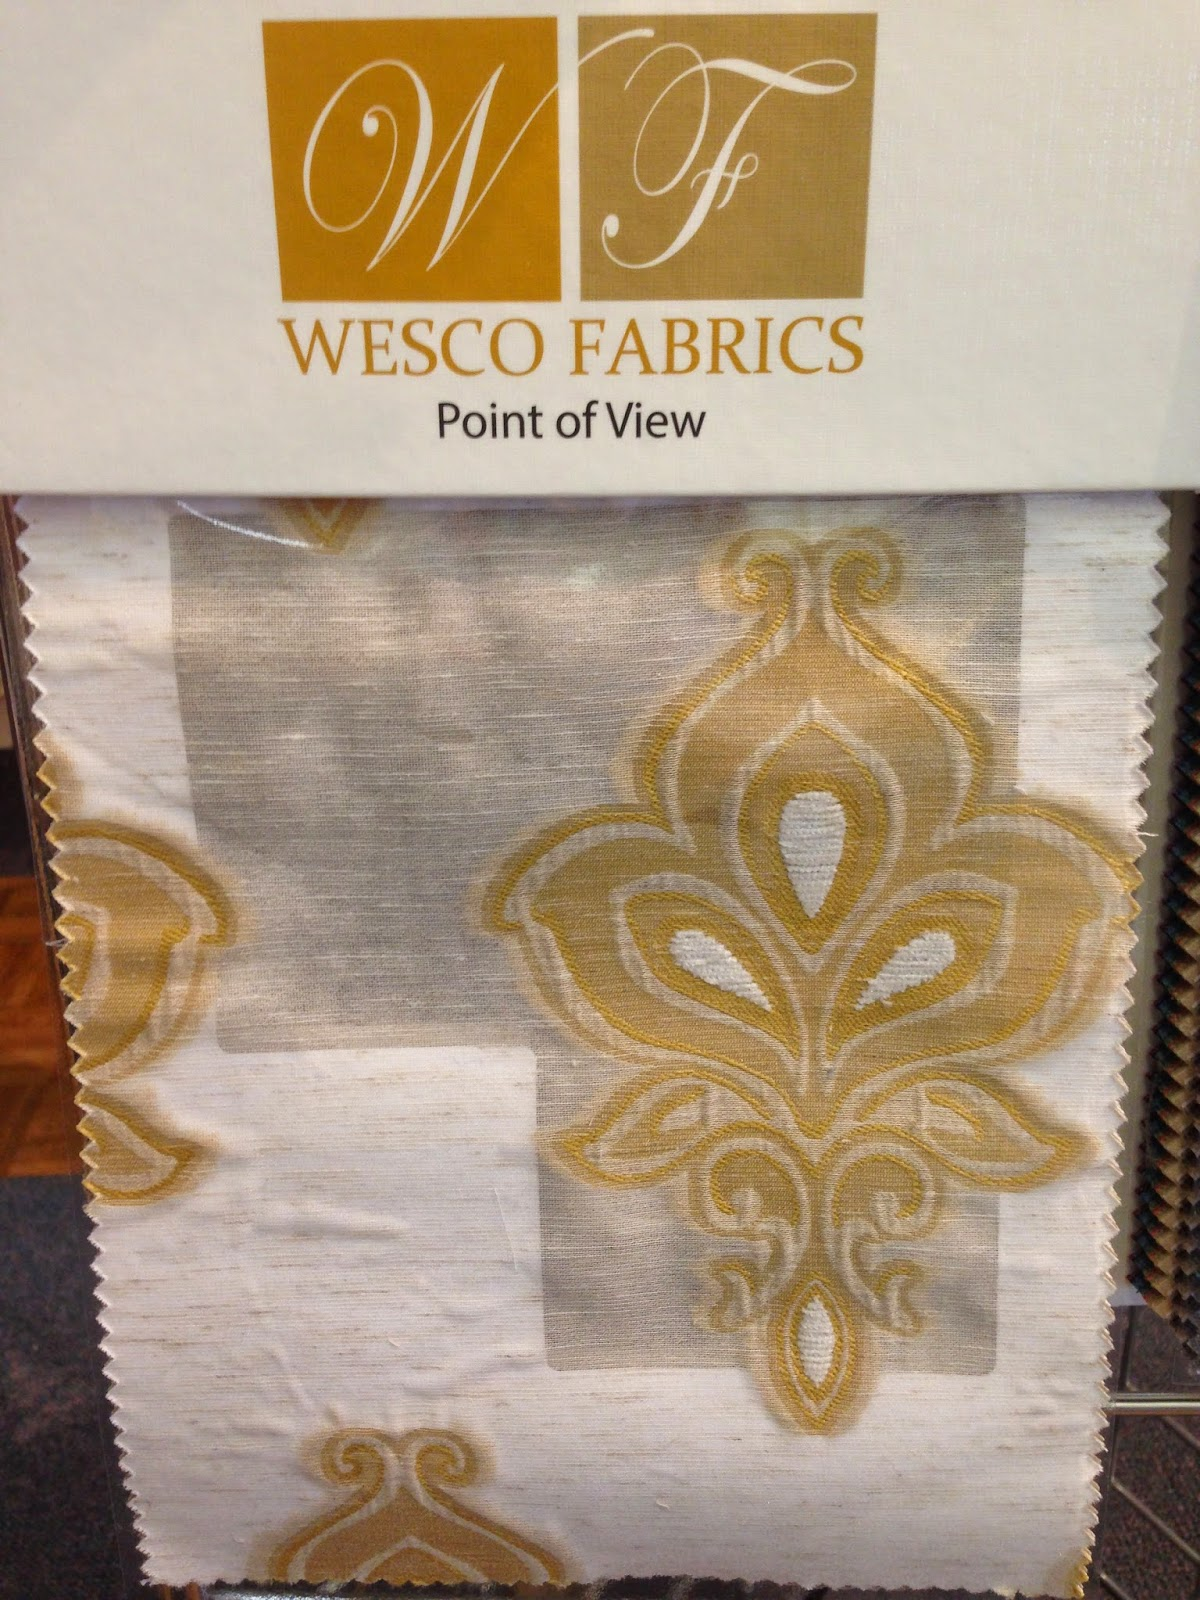 prints, stripes, perpendicular, Wesco Fabrics